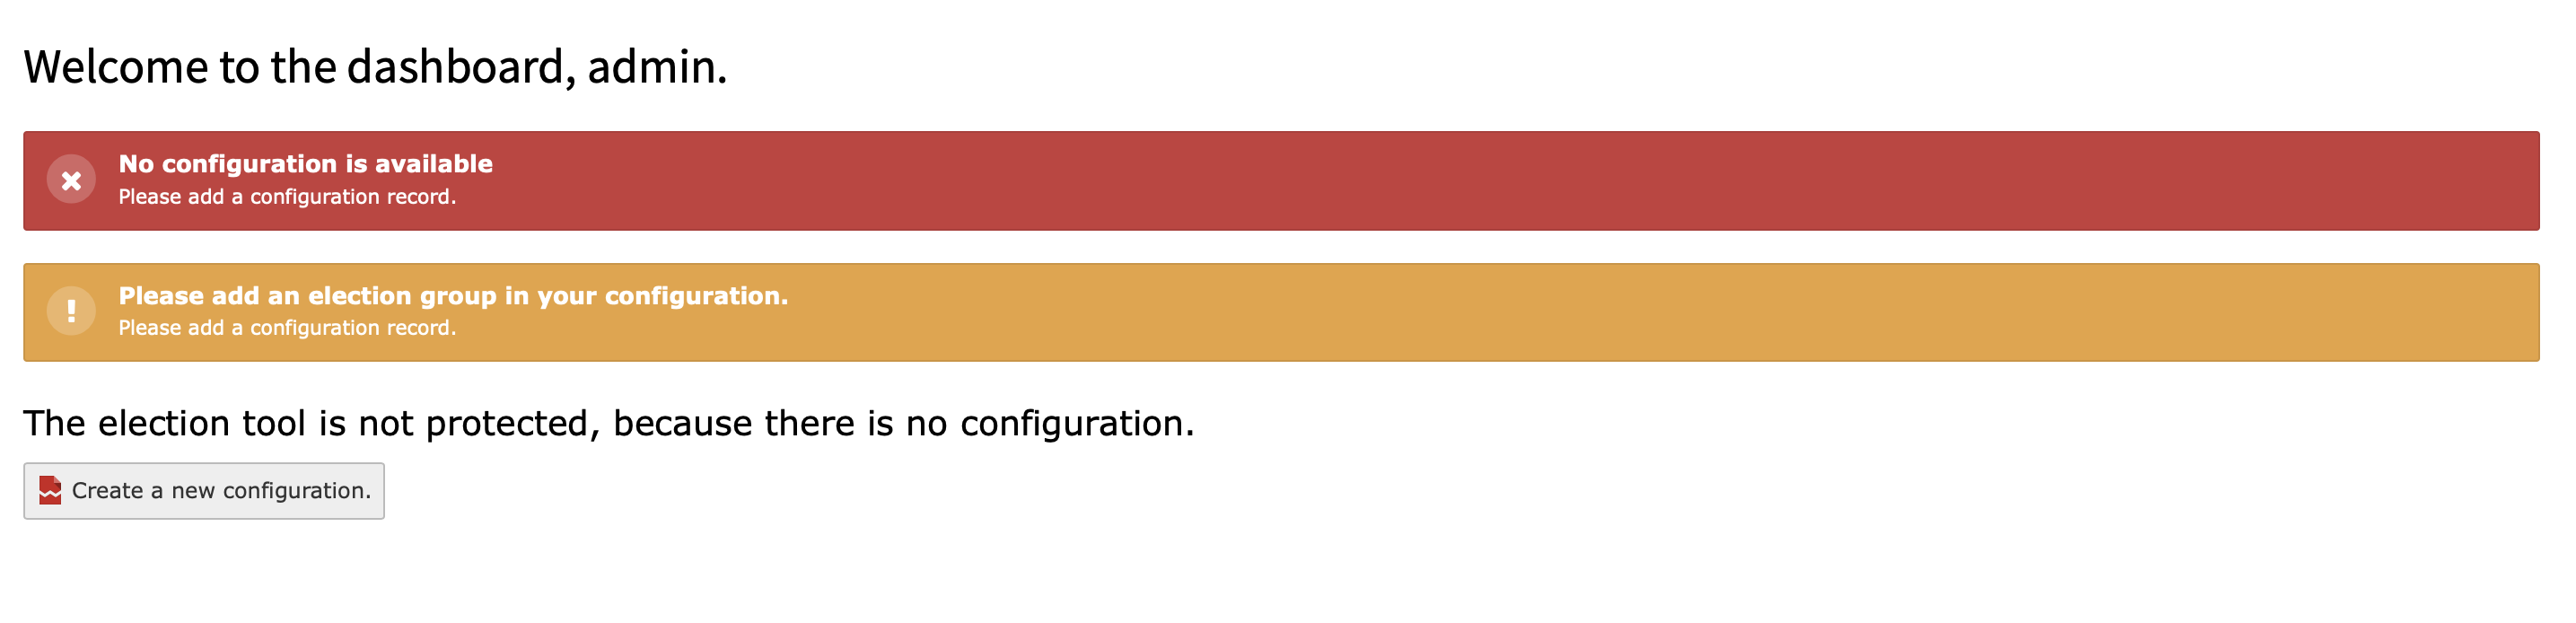 Documentation/Images/AdministratorManual/NewConfiguration.png